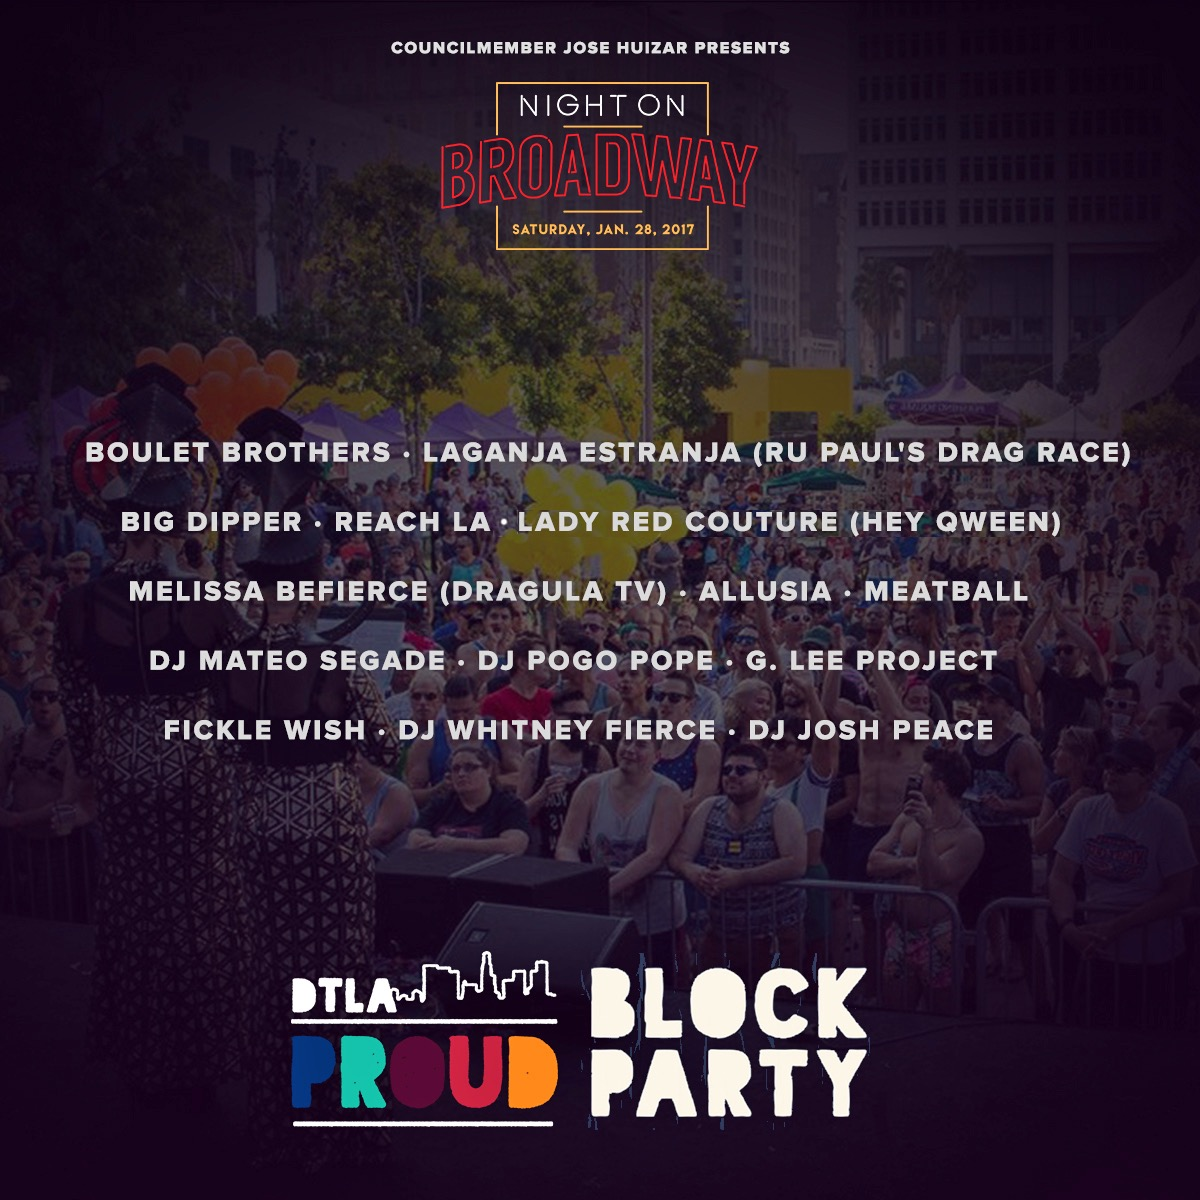 DTLA Proud Block Party Lineup and Volunteer Opportunities